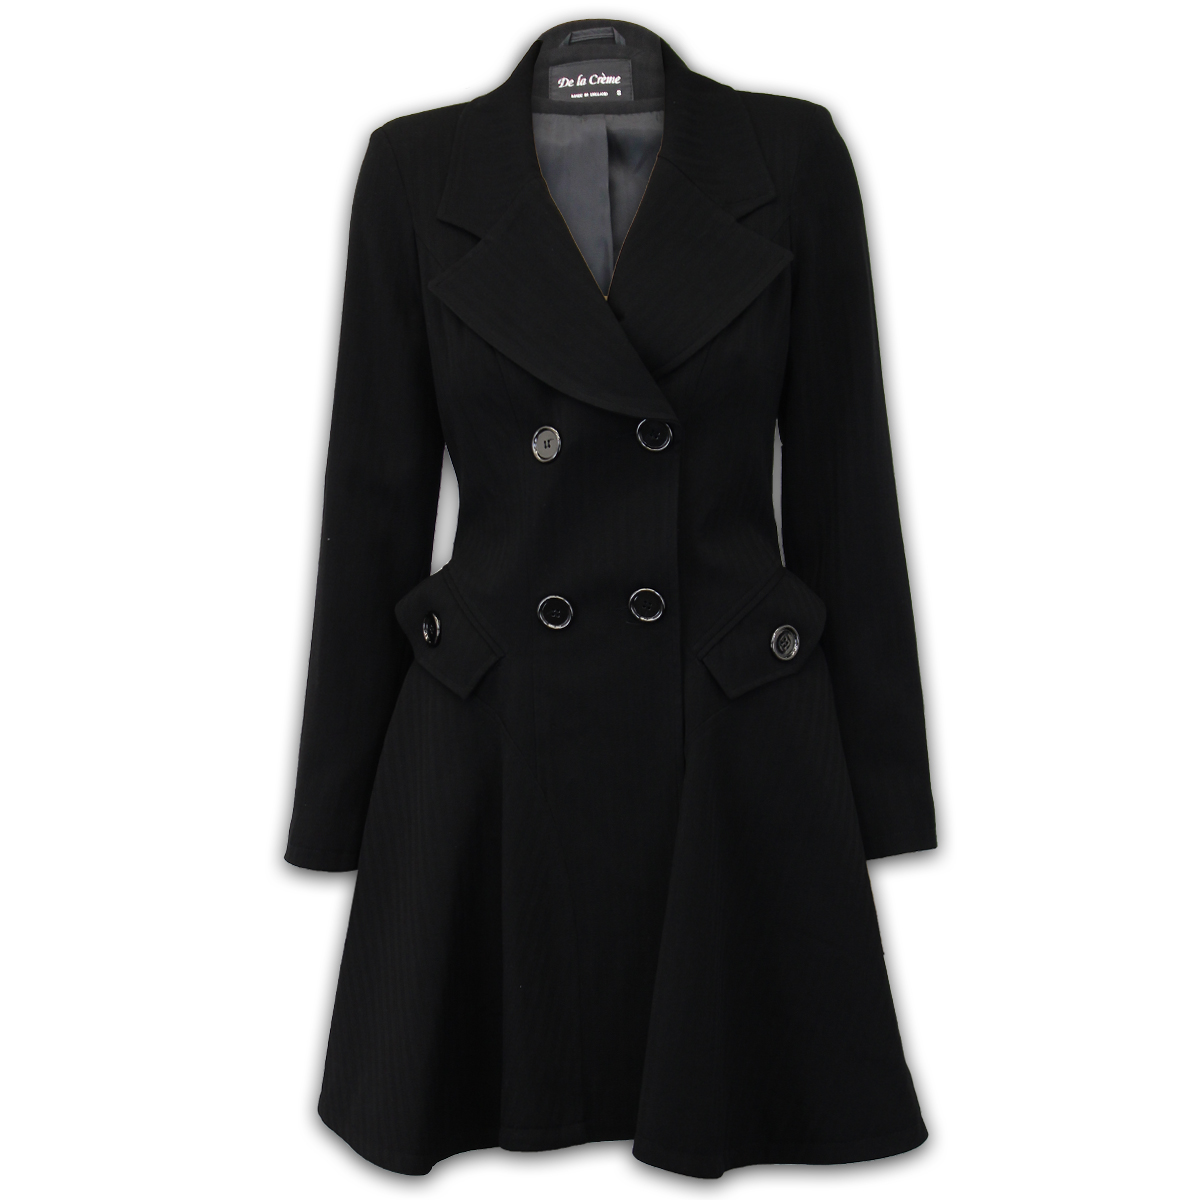 This coat is an exceptional fashion piece! This style with an accentuated waist and a flared hem is very eye-catching.